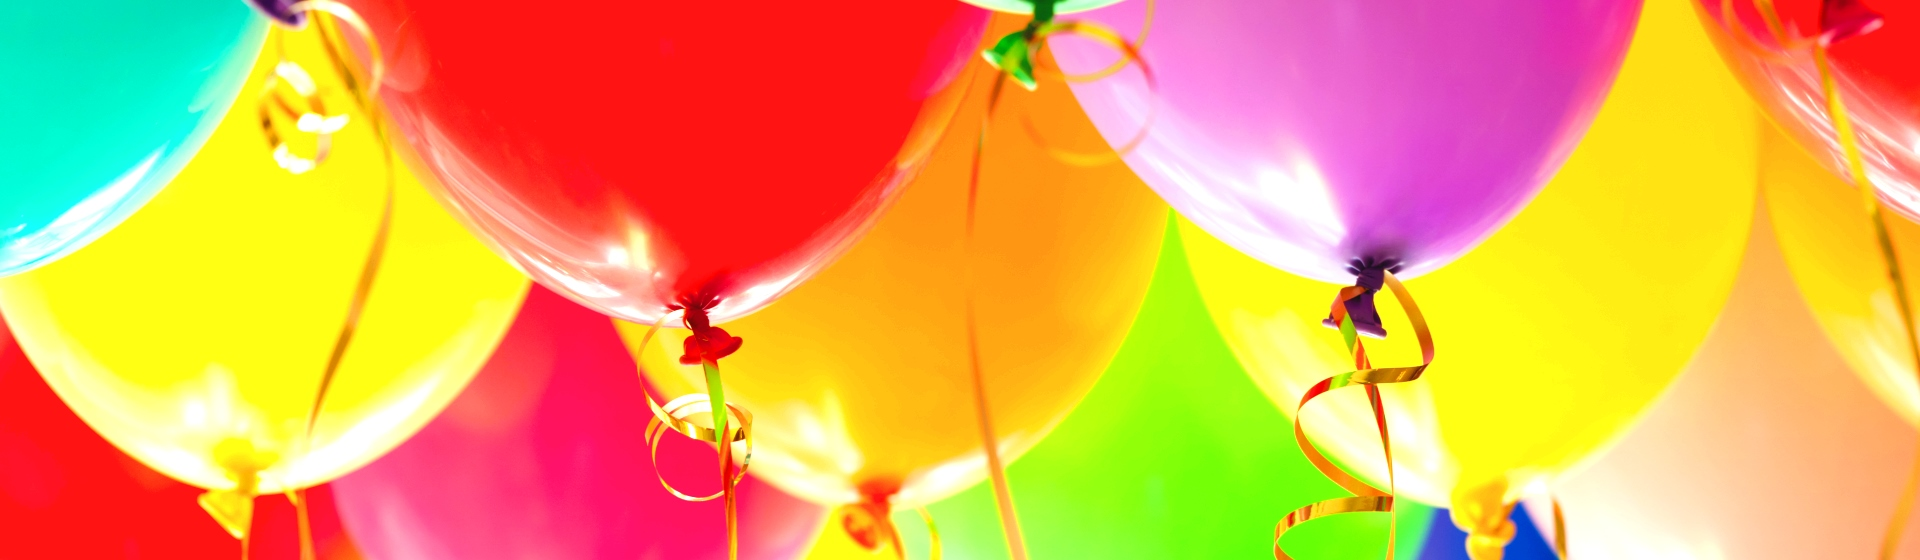 Colorful party balloons.